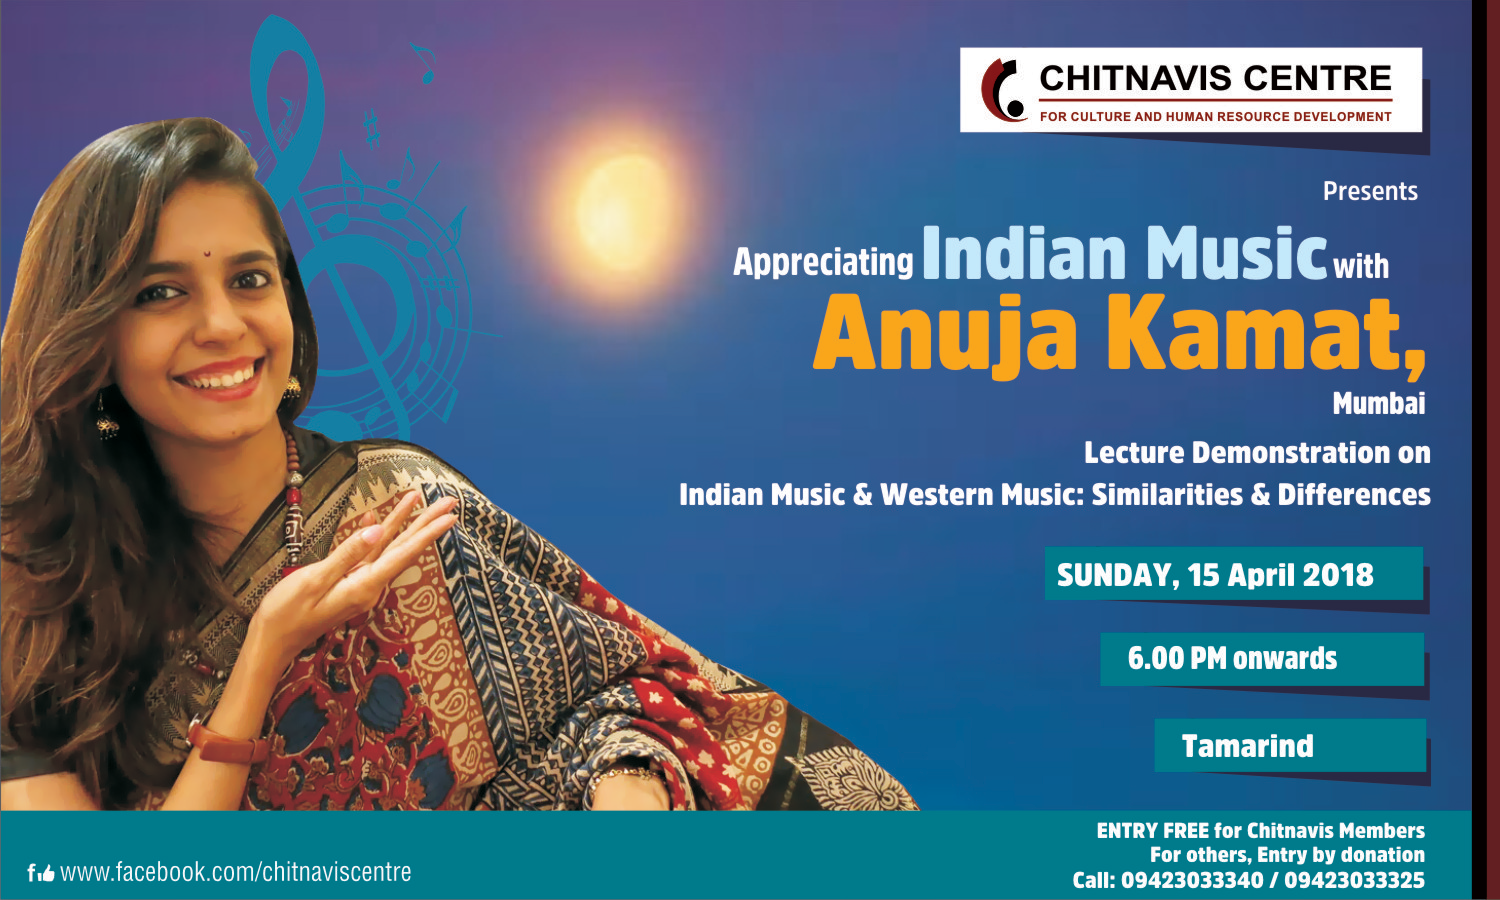 Appreciating Indian Music with Anuja Kamat, Mumbai